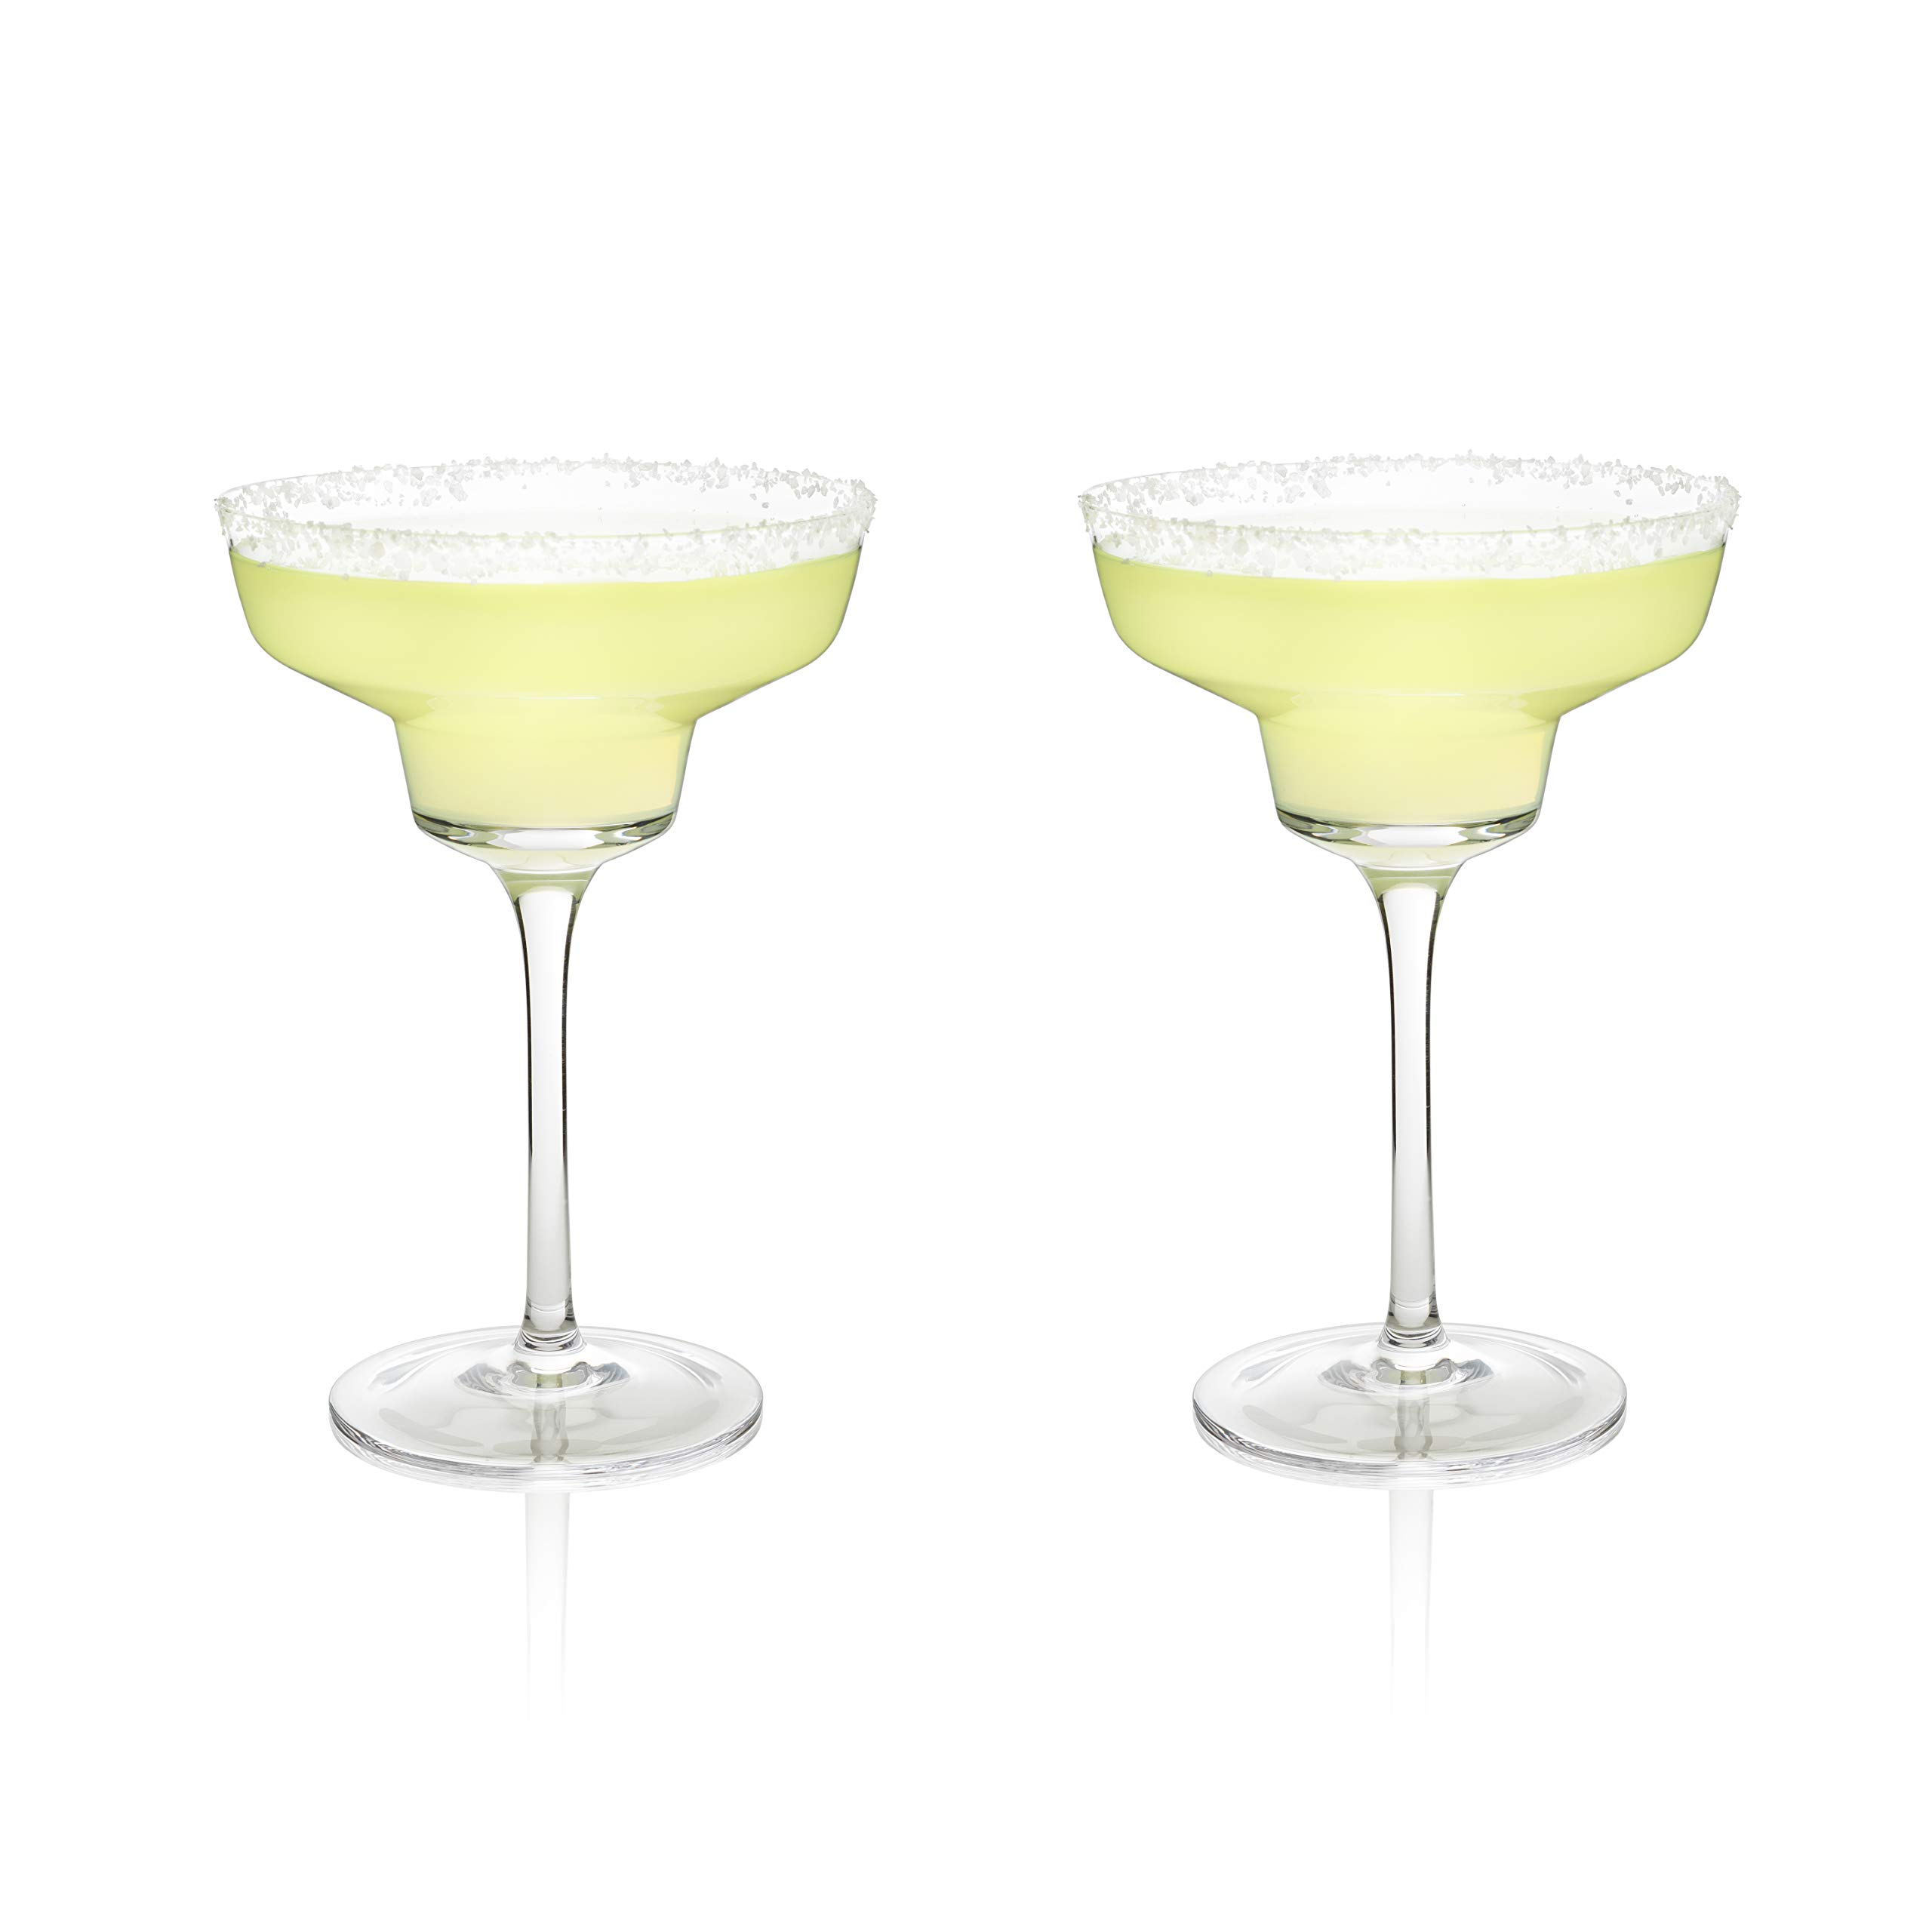 Viski 5253 Raye Crystal, One Size, Margarita Glasses